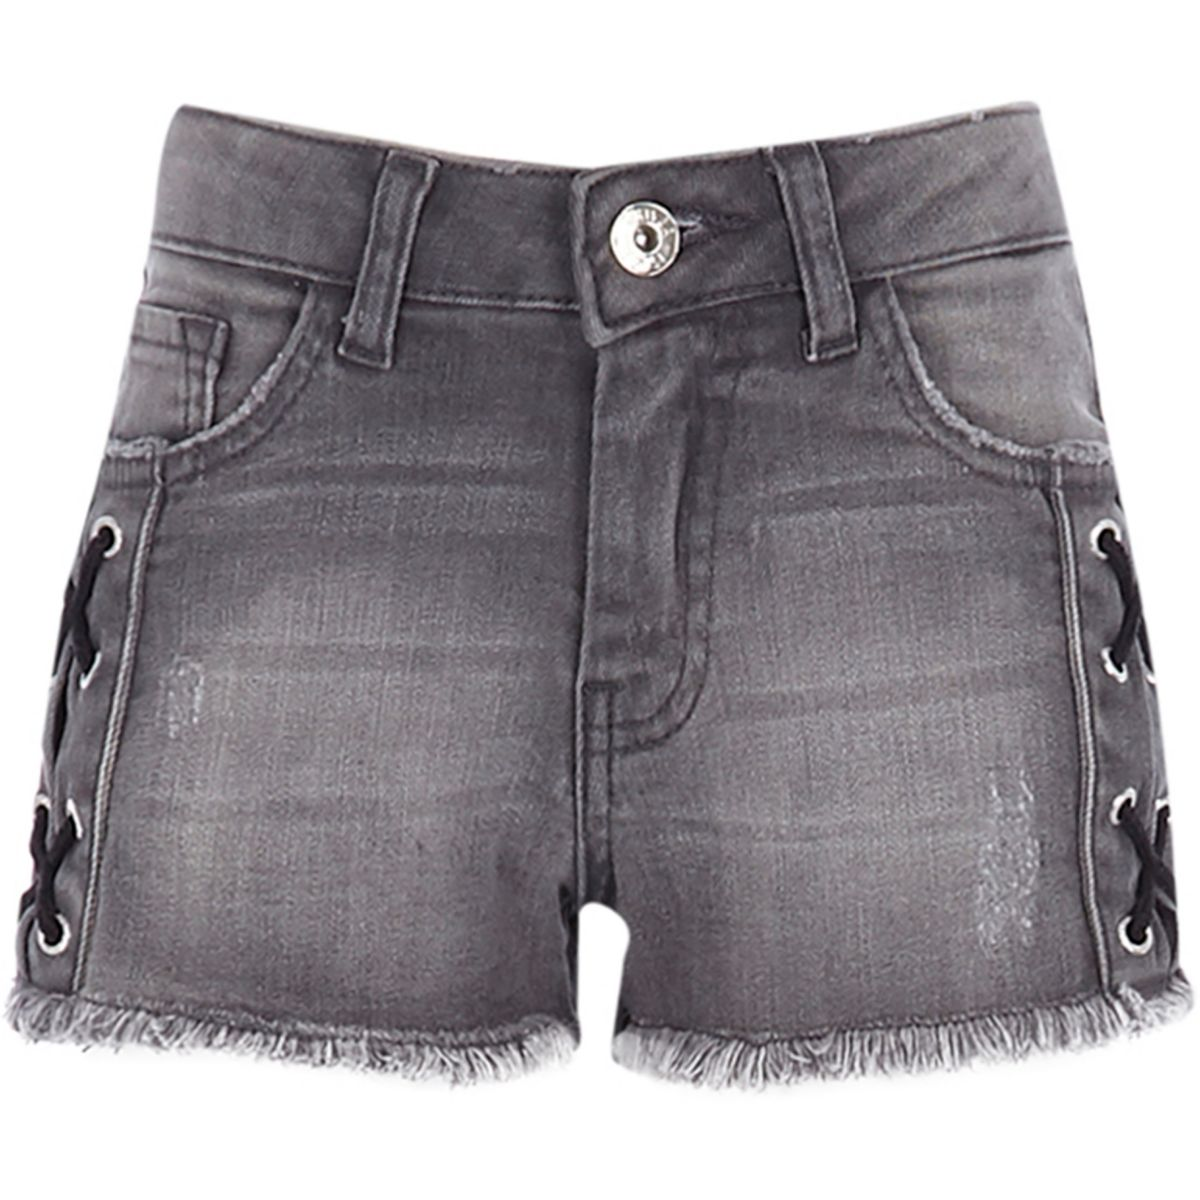 Girls washed black eyelet denim shorts